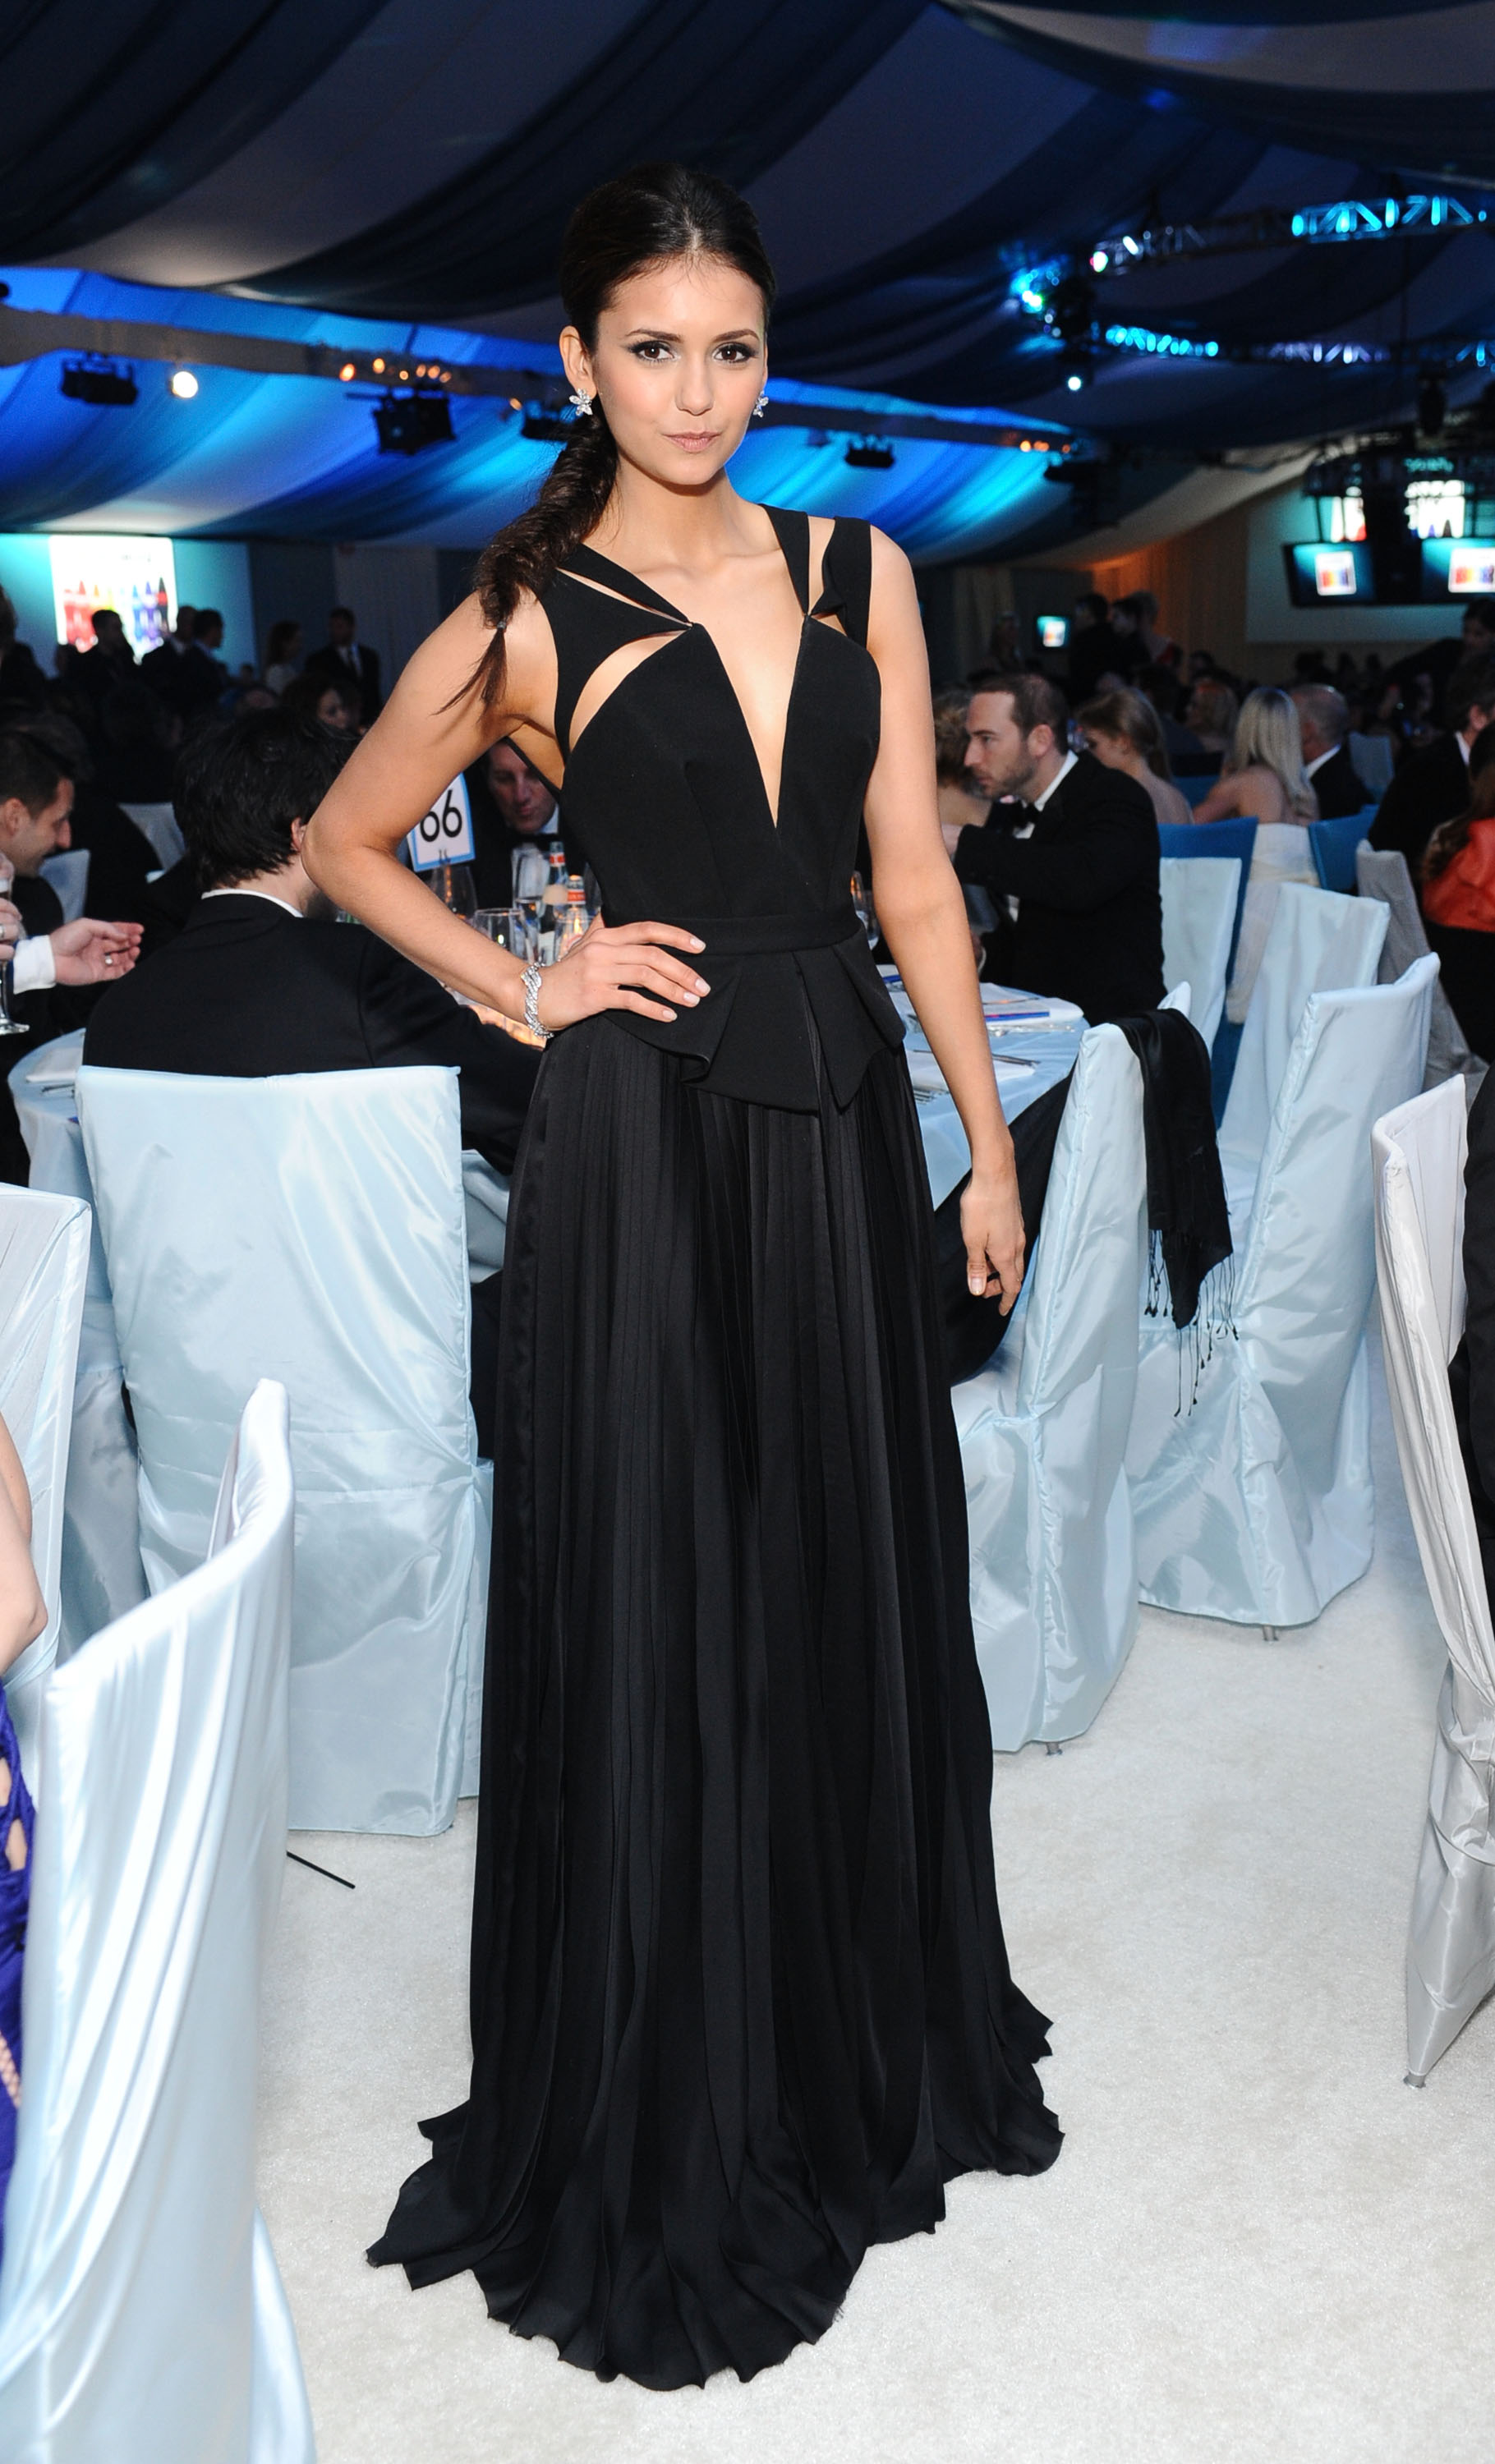 Nina Dobrev looked superchic in a black cutout-infused J. Mendel gown at Elton John's 2012 Oscars party.